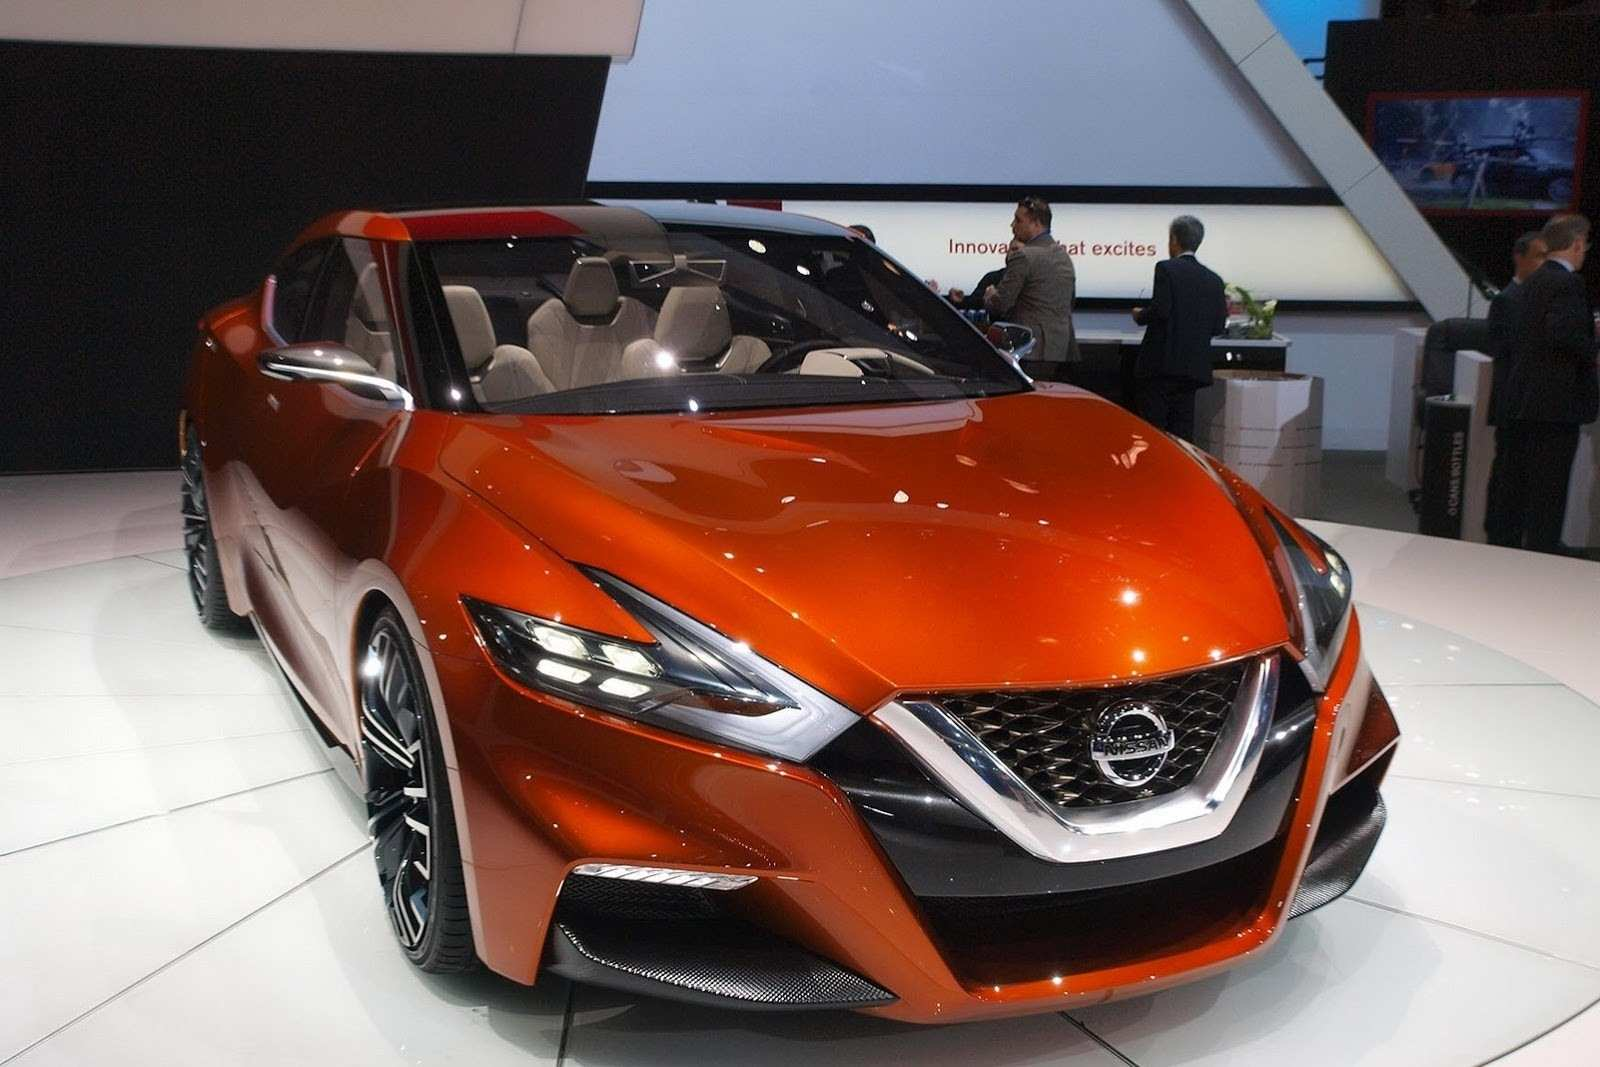 93 Best Review 2020 Nissan Maxima Nismo Concept by 2020 Nissan Maxima Nismo